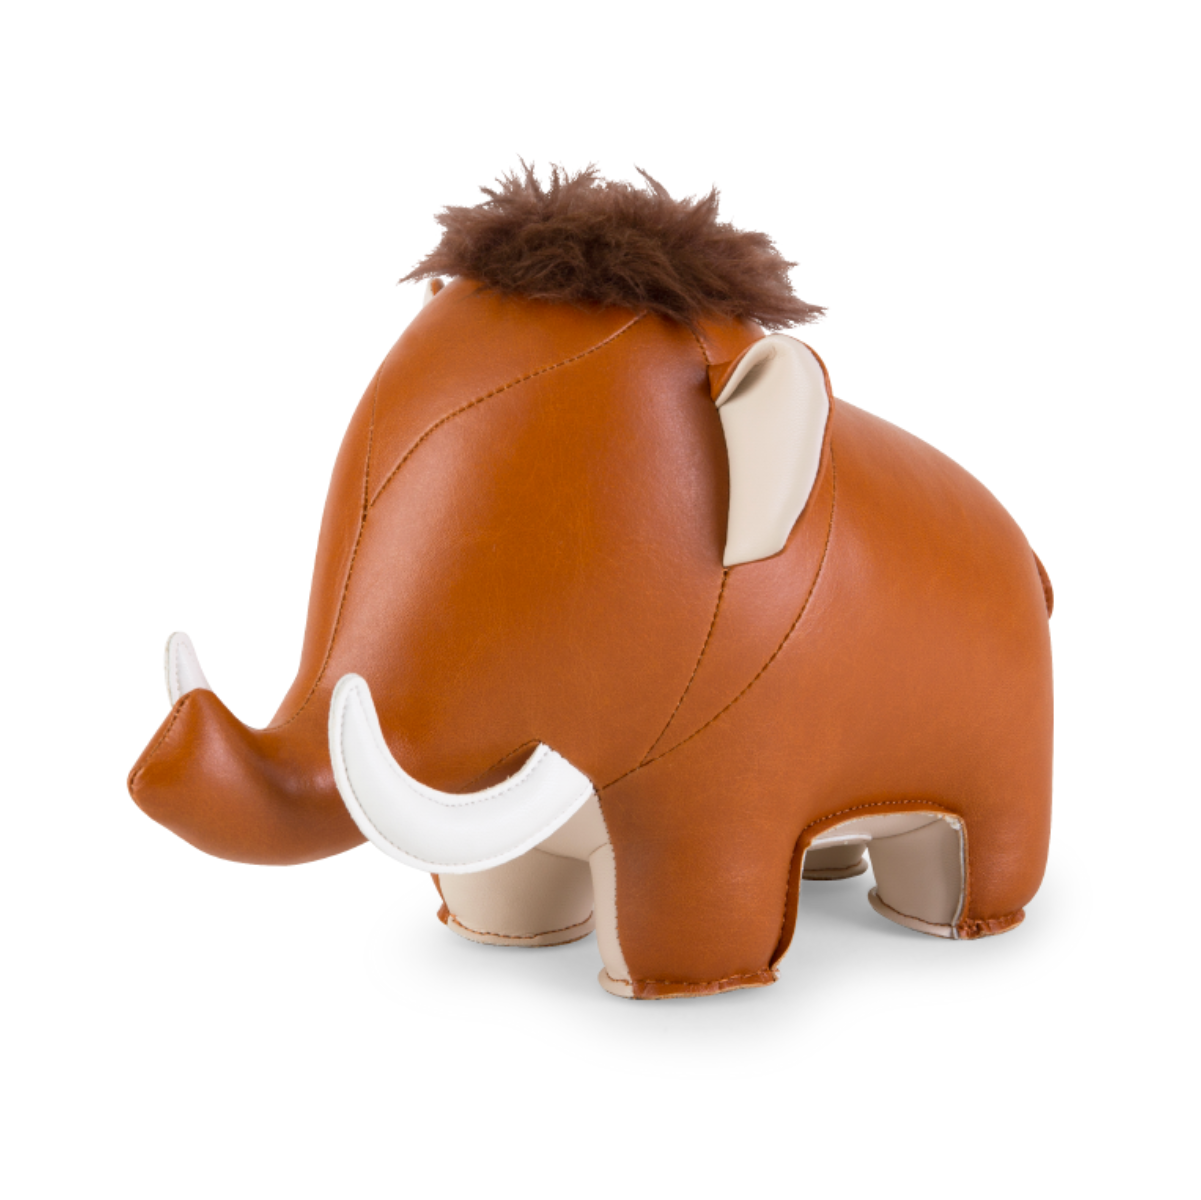 Zuny Mammoth Moma bookend